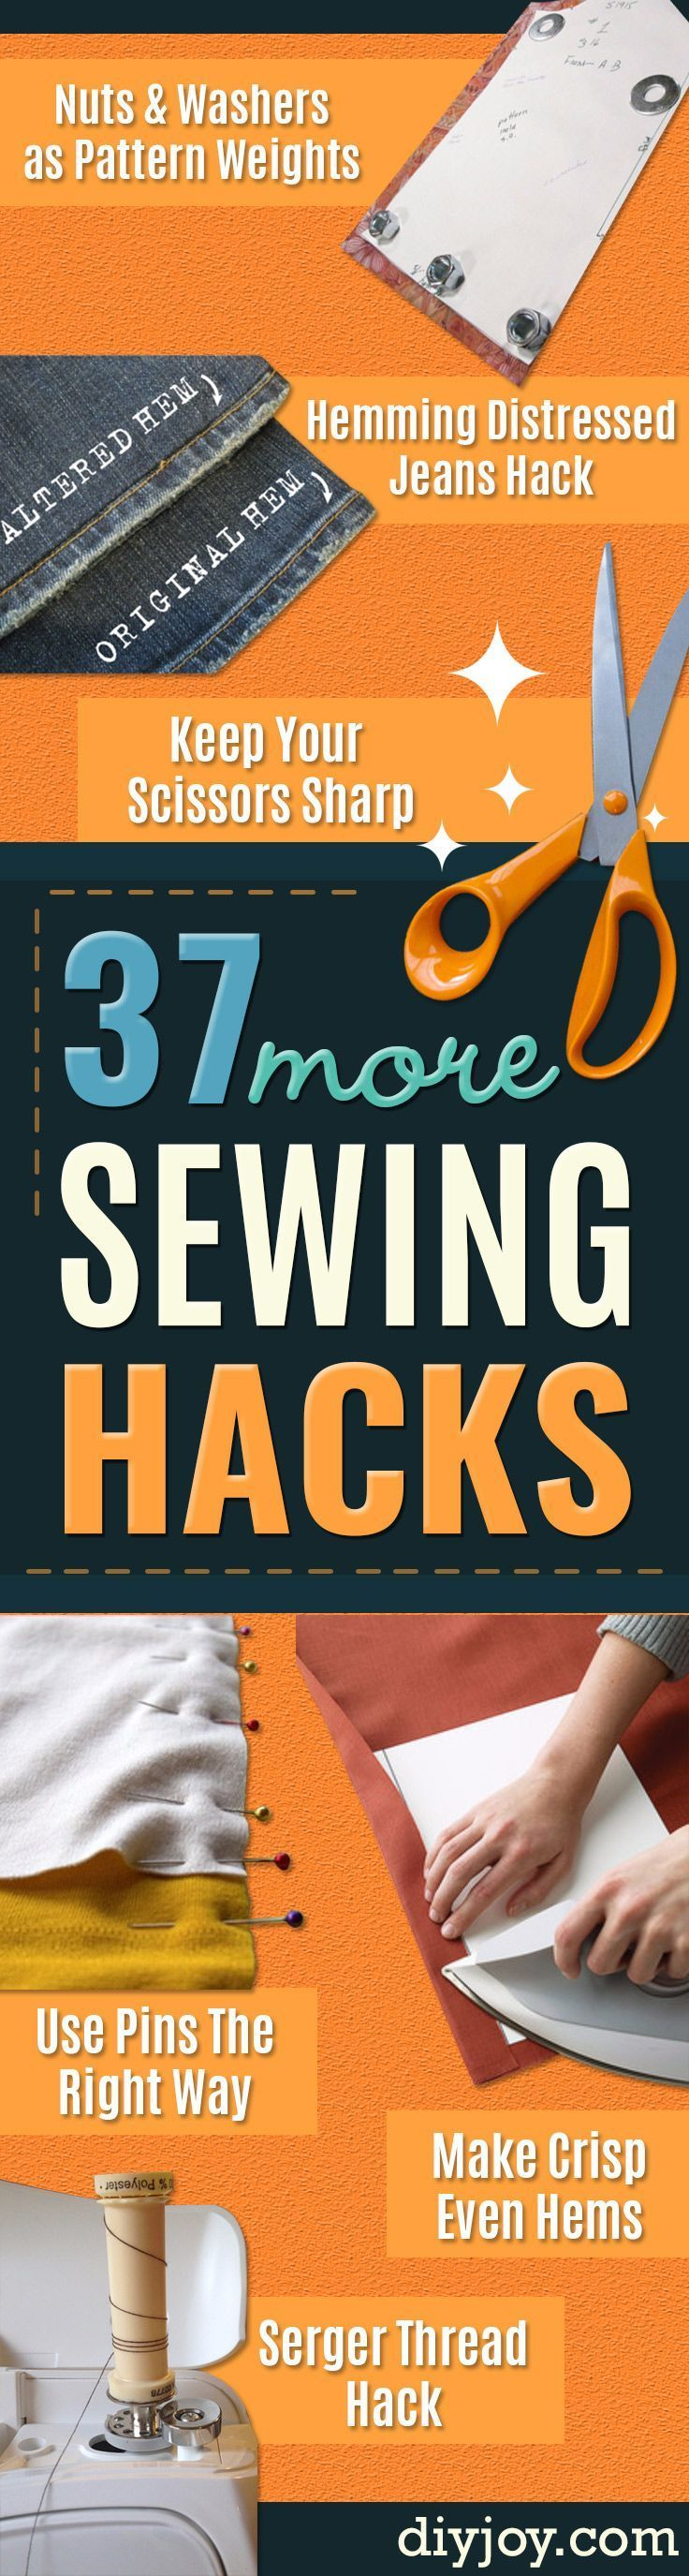 More Sewing Hacks – Best Tips and Tricks for Sewing Patterns, Projects, Machines…